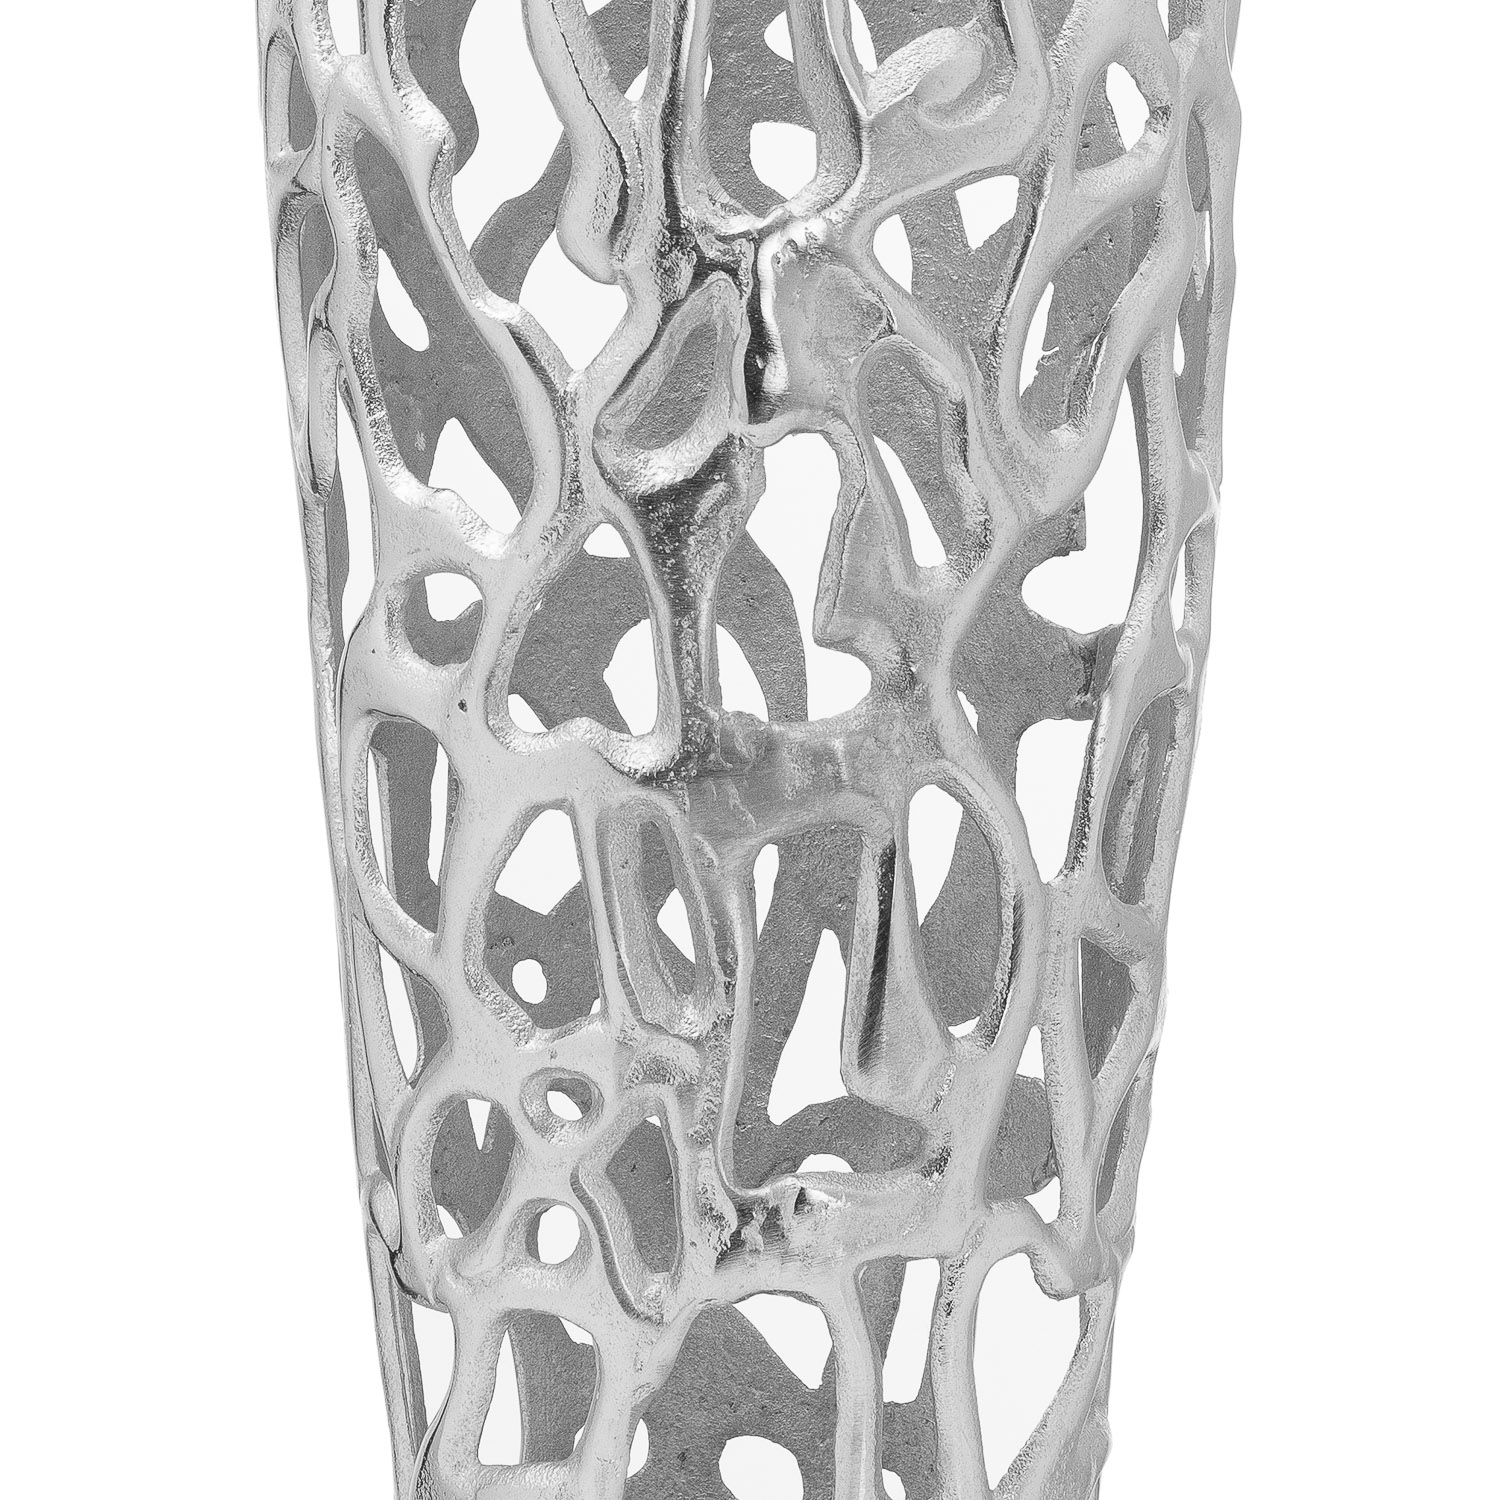 Ohlson Silver Perforated Coral Inspired Vase - Image 2